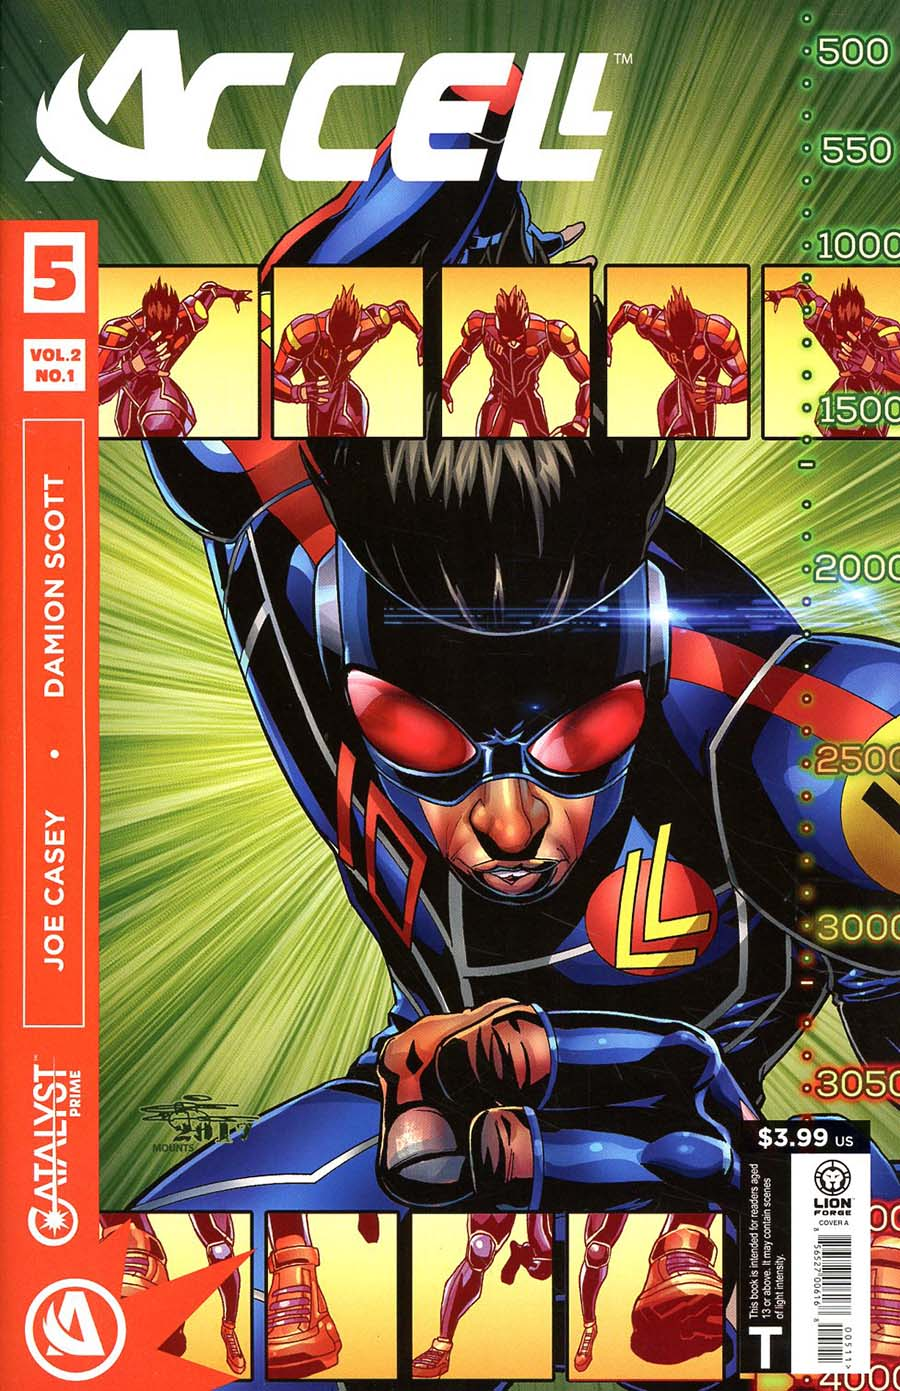 Catalyst Prime Accell #5